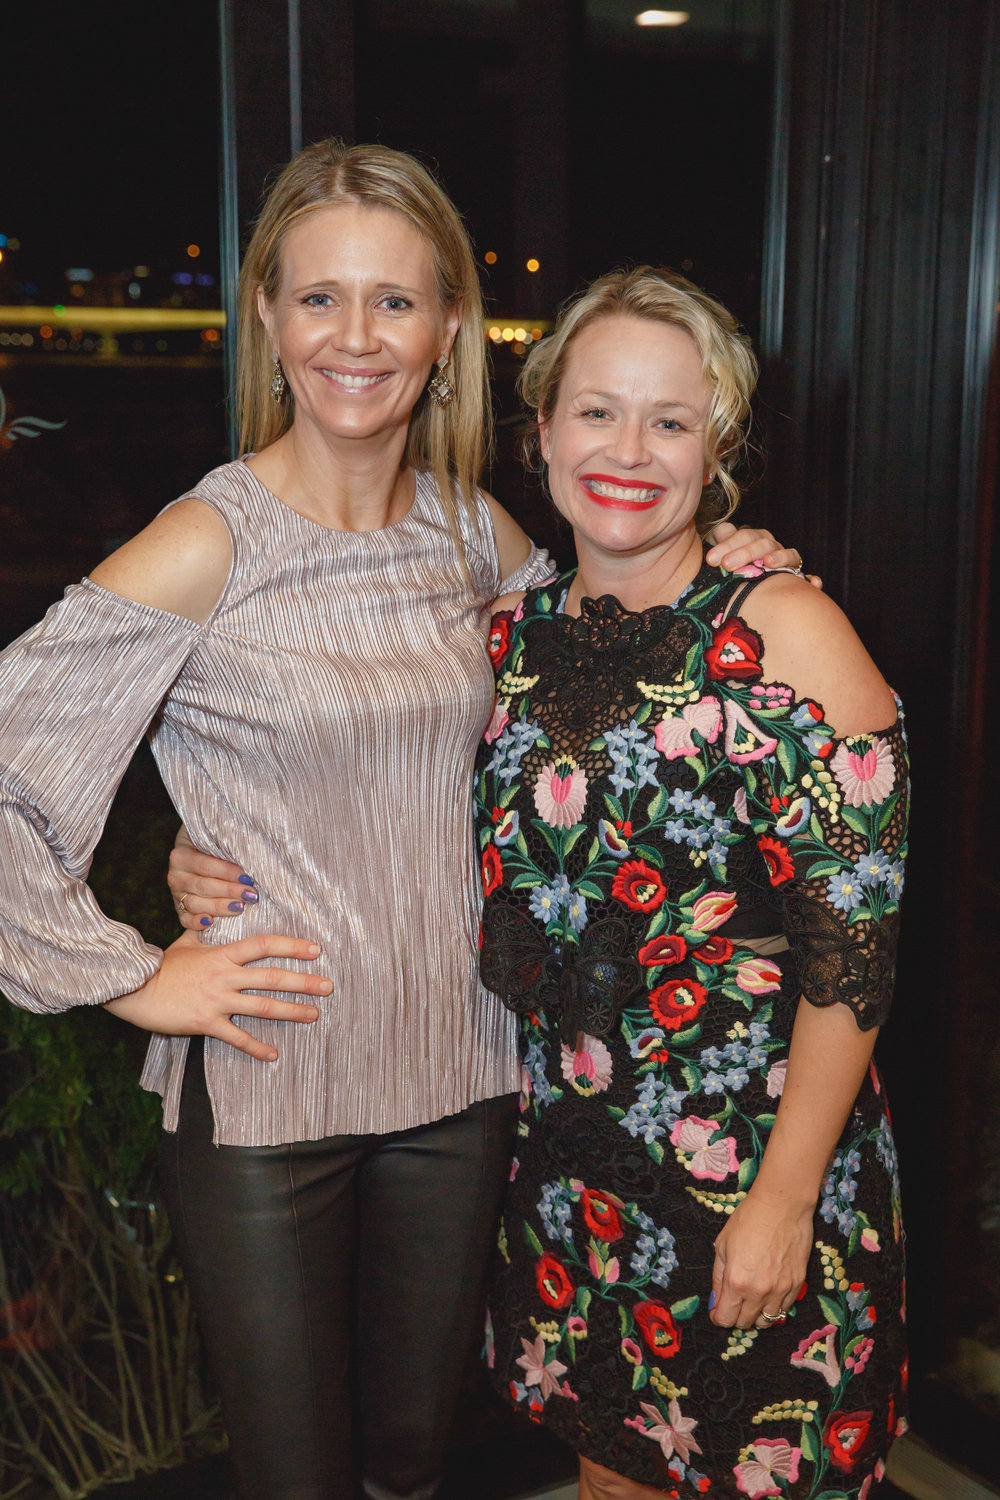 Jane Thomson with Corrina Wright. Corrina is board member with the AWIWA, legendary winemaker and CEO of Oliver's Taranga.